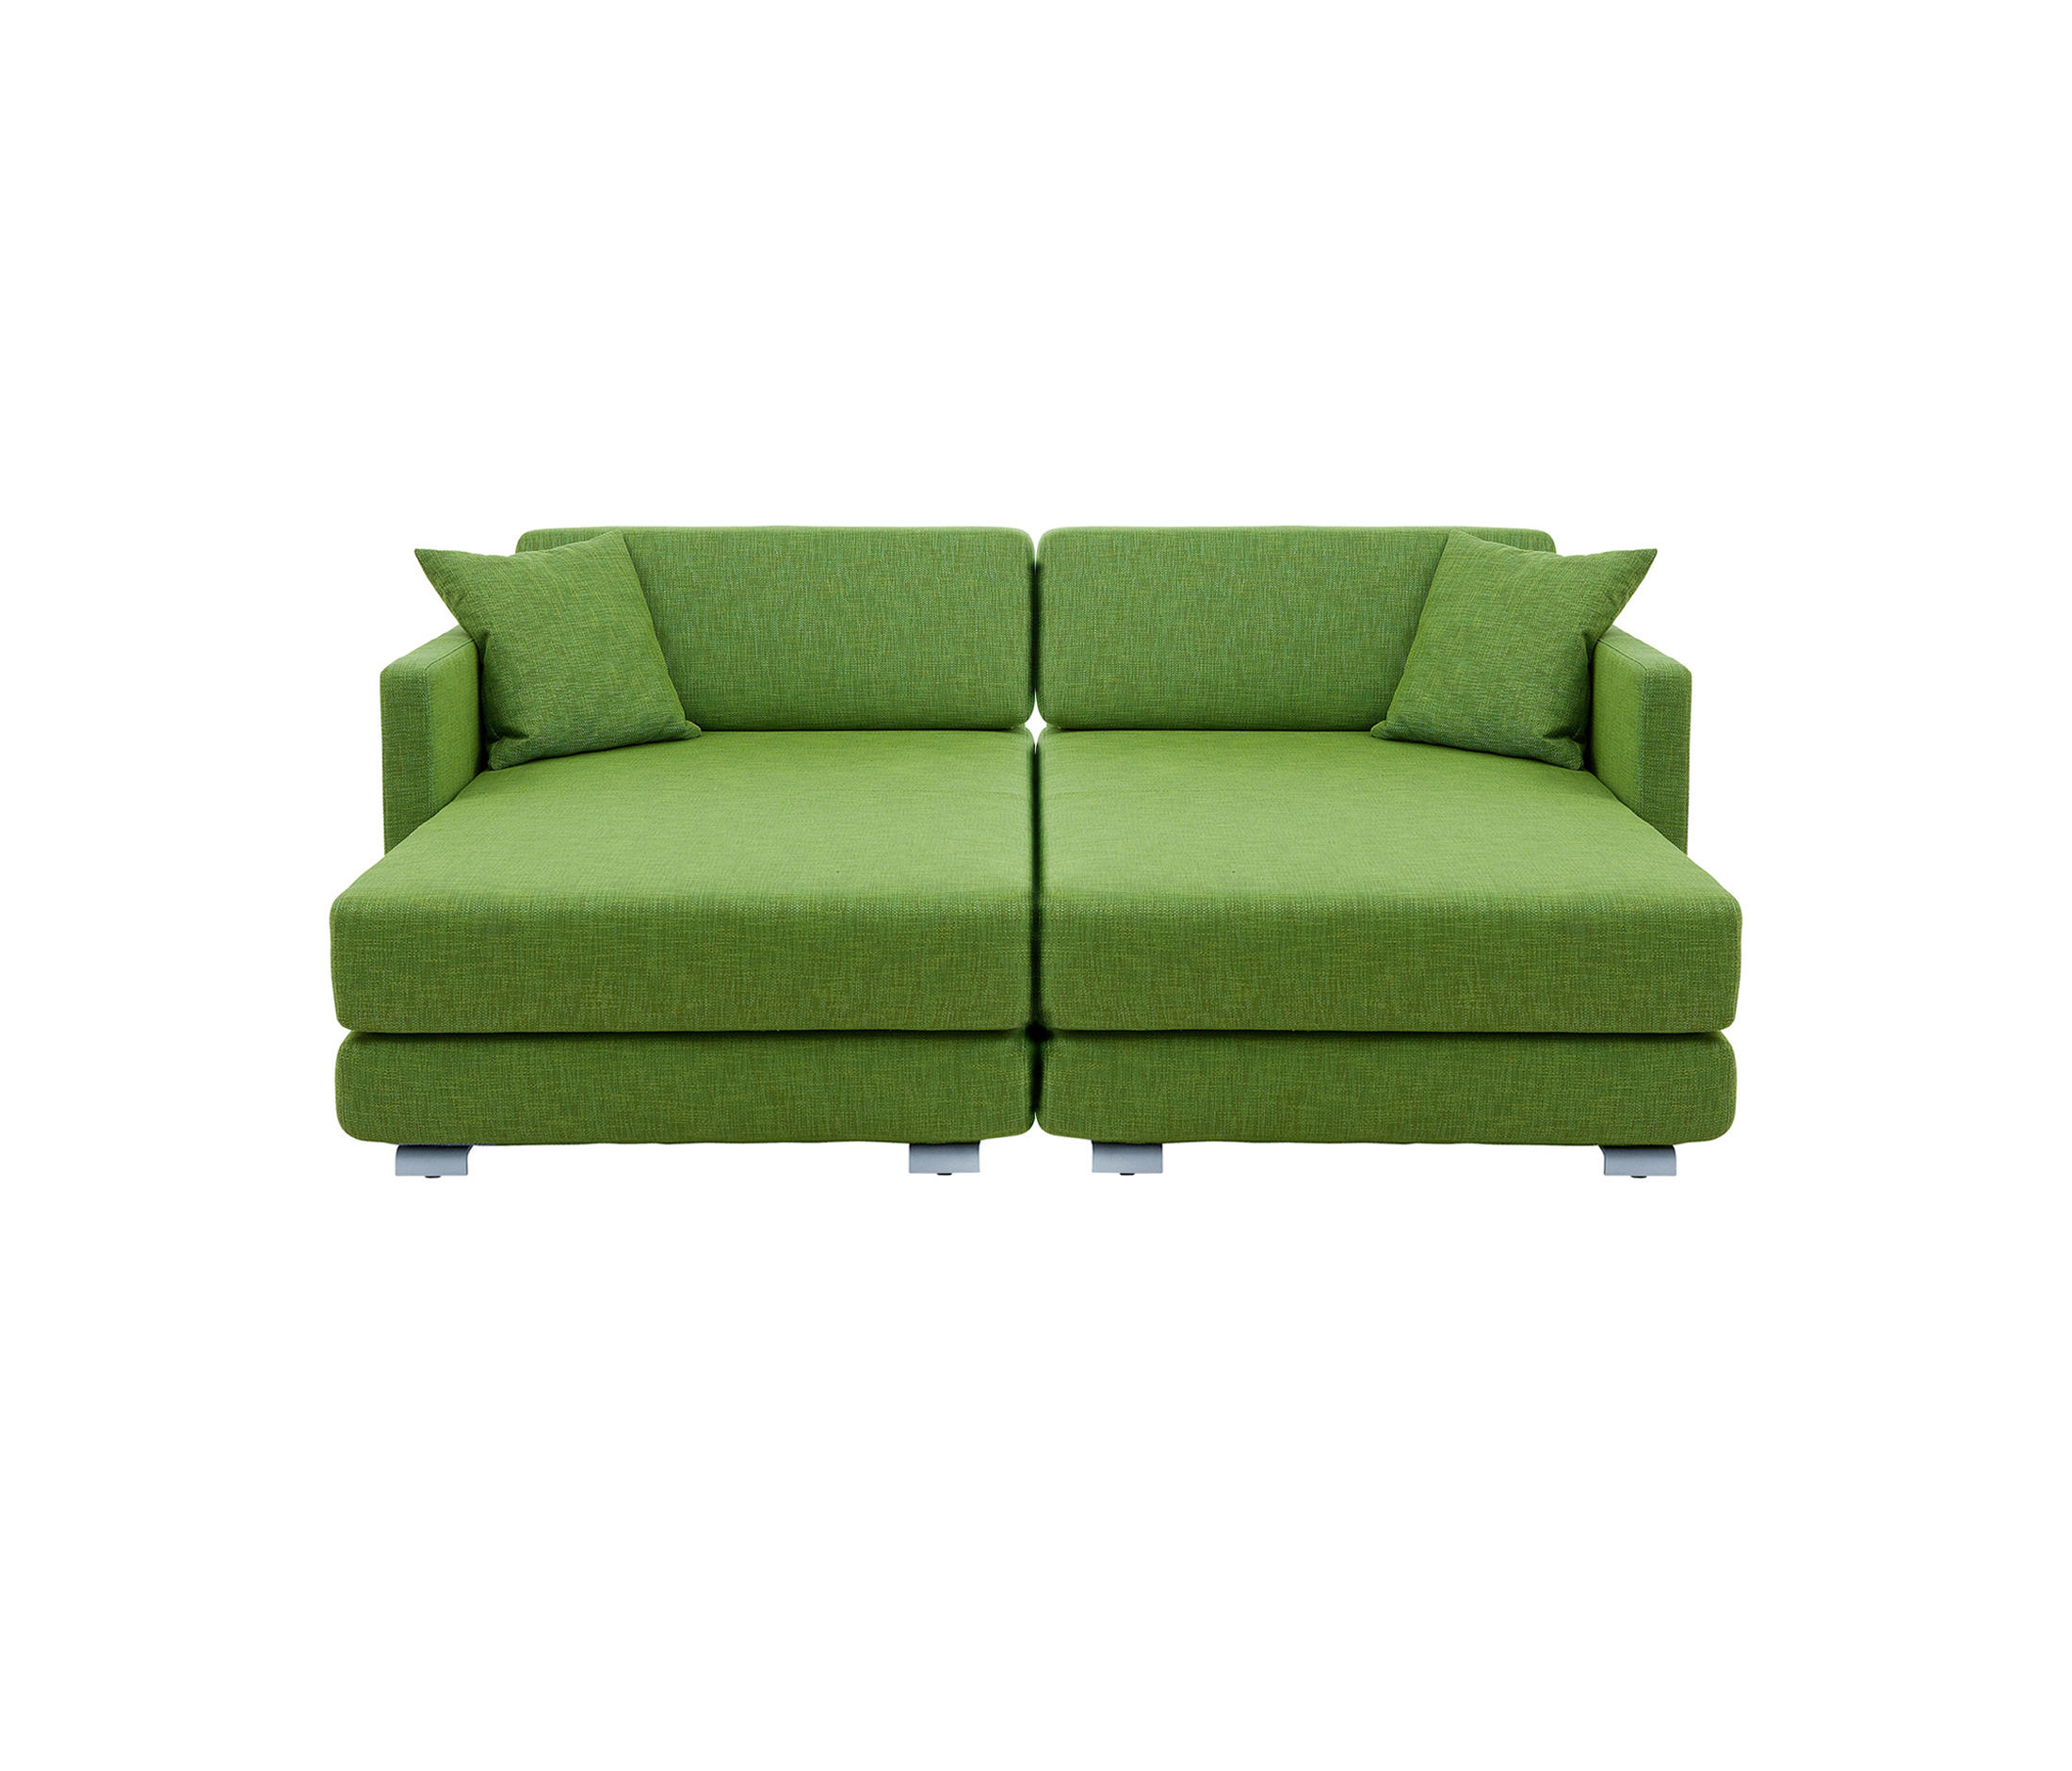 chez long sofa bed im king we todd ed jokes lounge chaise beds from softline a s architonic